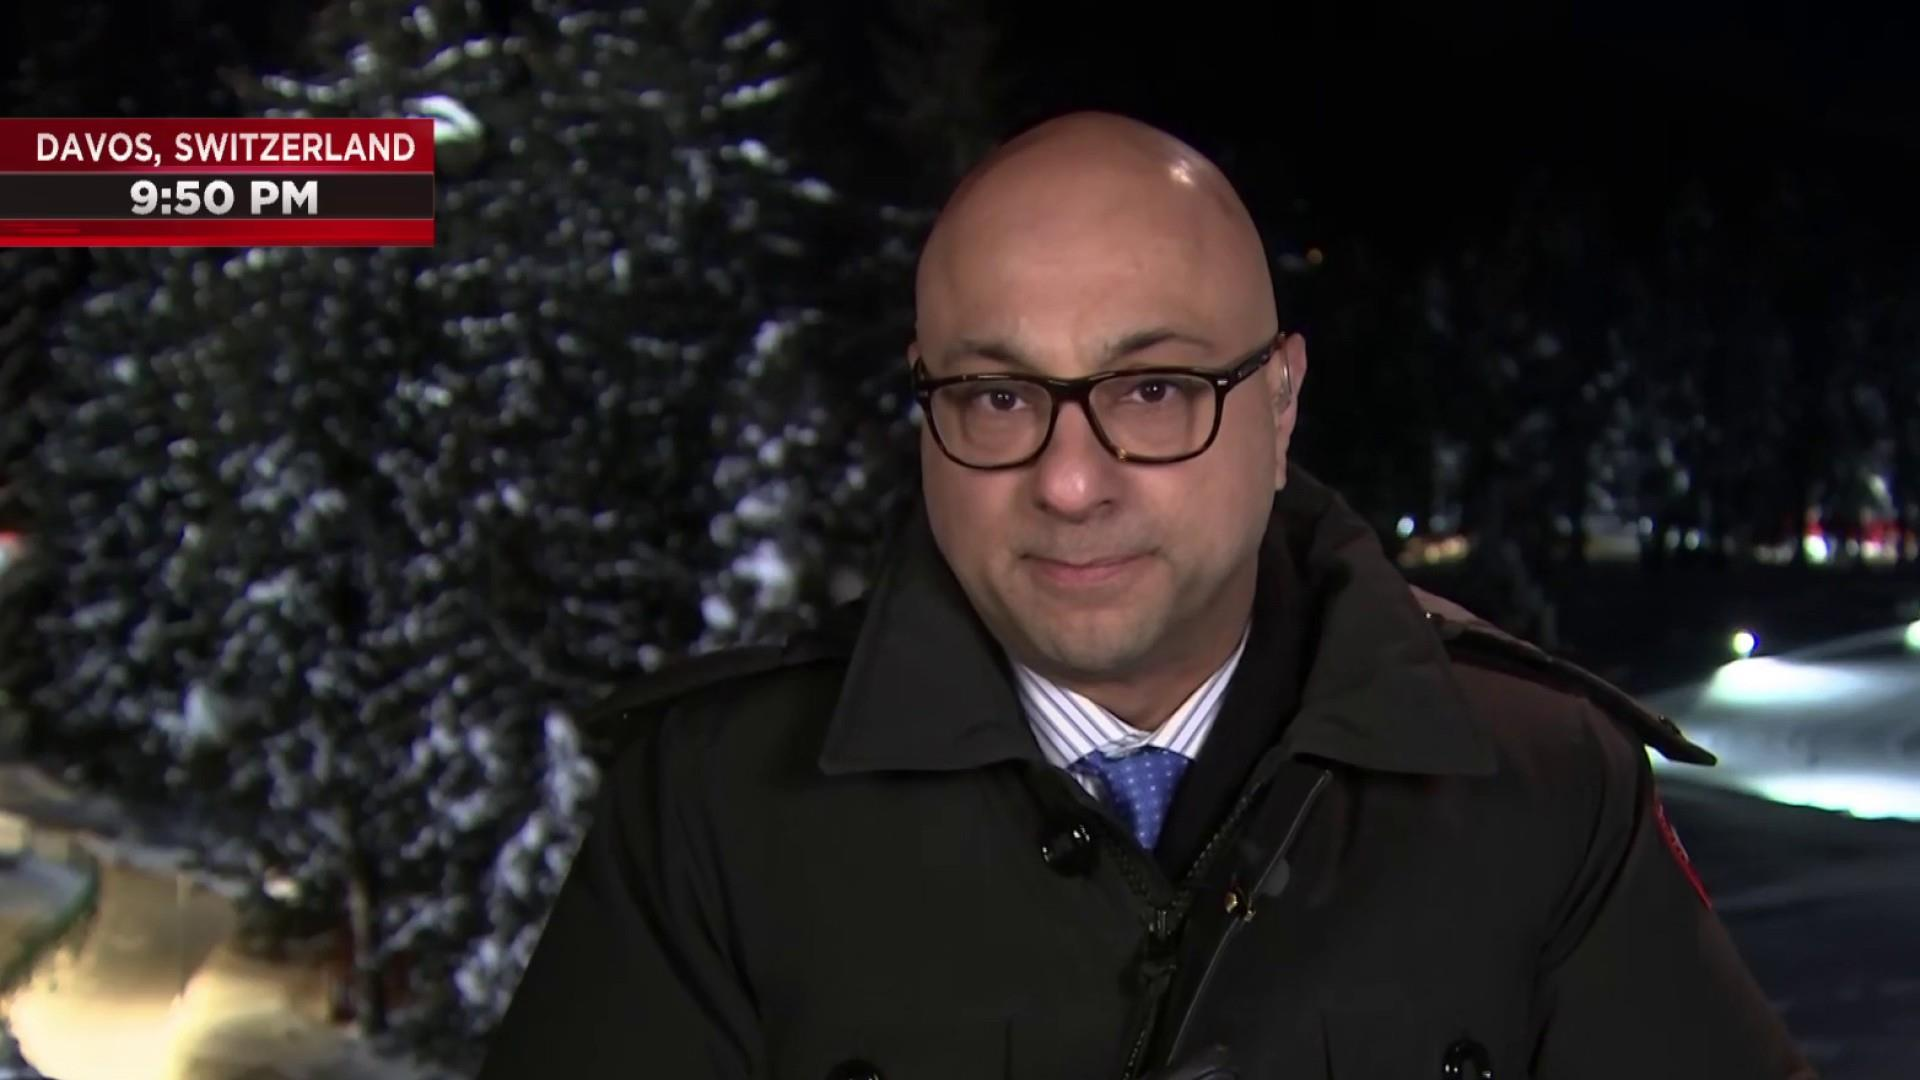 Ali Velshi in Davos: Global elite focus on economic concerns